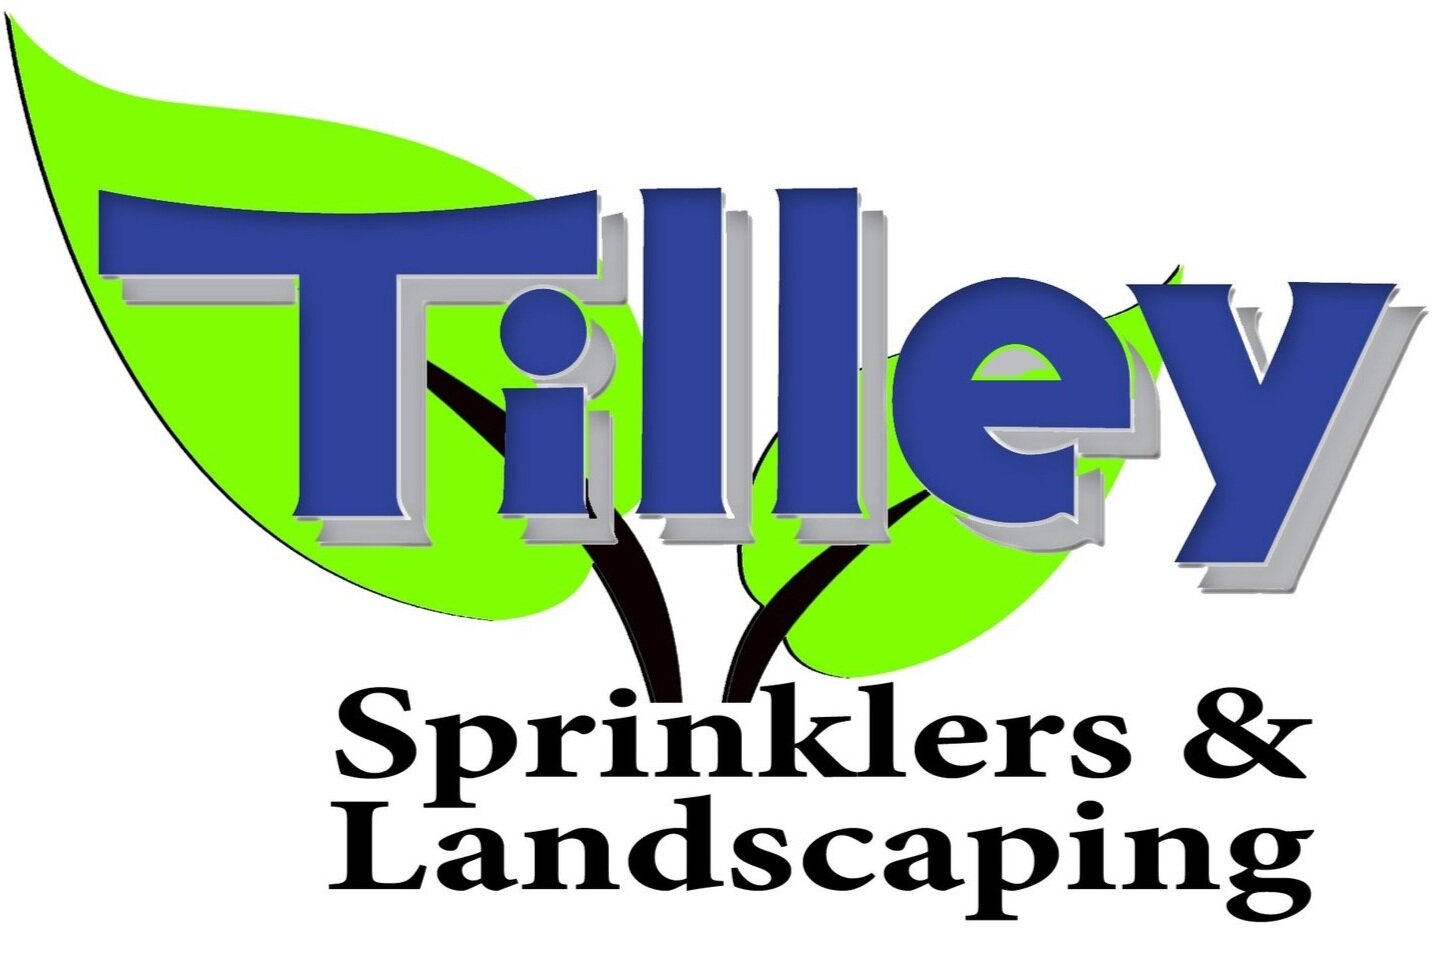 Tilley Sprinkler Systems & Landscaping